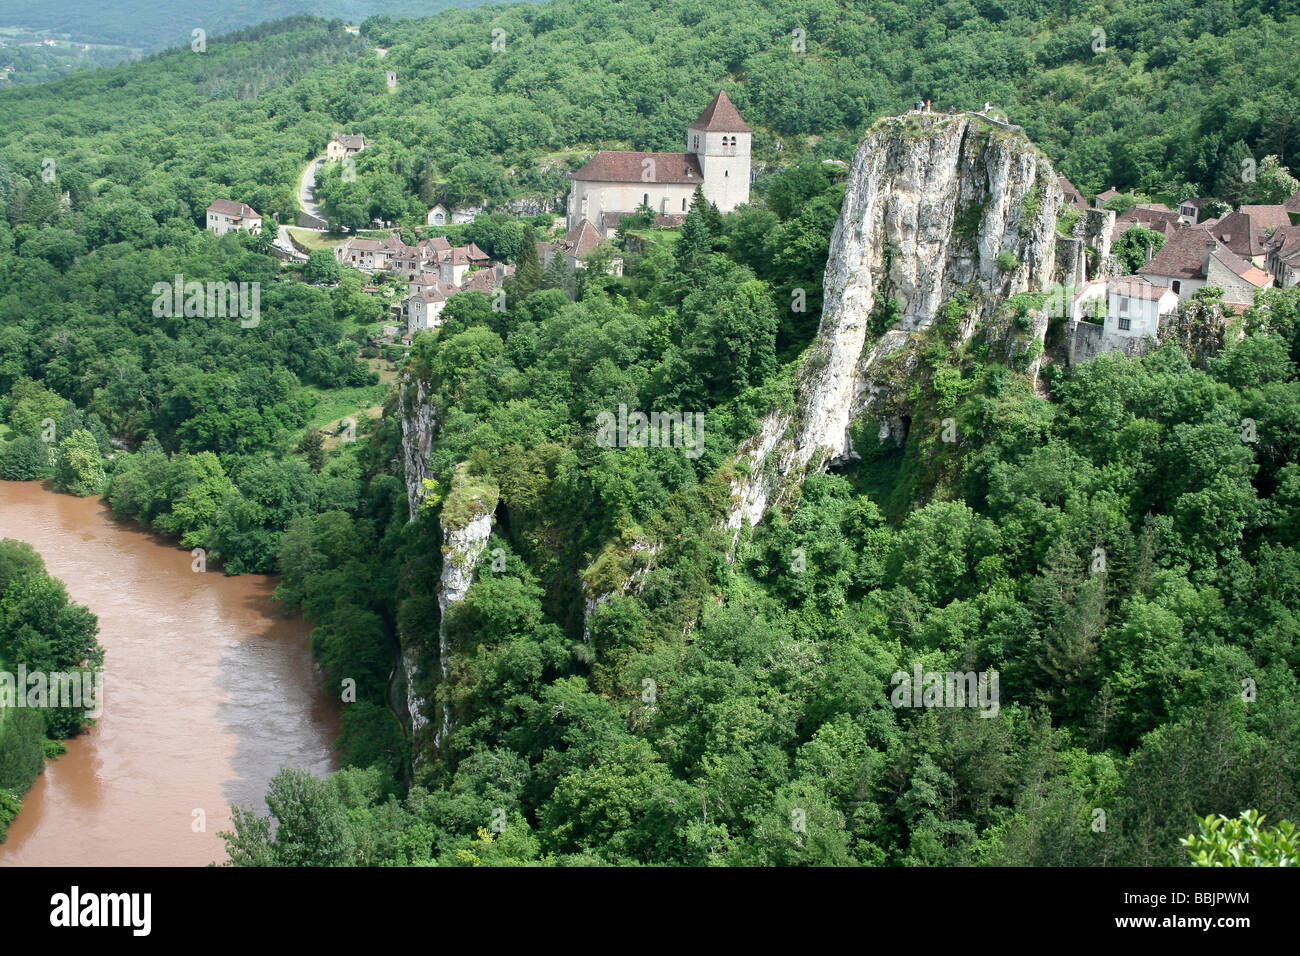 St-Cirq-Lapopie Clinging Precariously To A Rocky Outcrop Above The River Lot, Midi Pyrenees, France - Stock Image